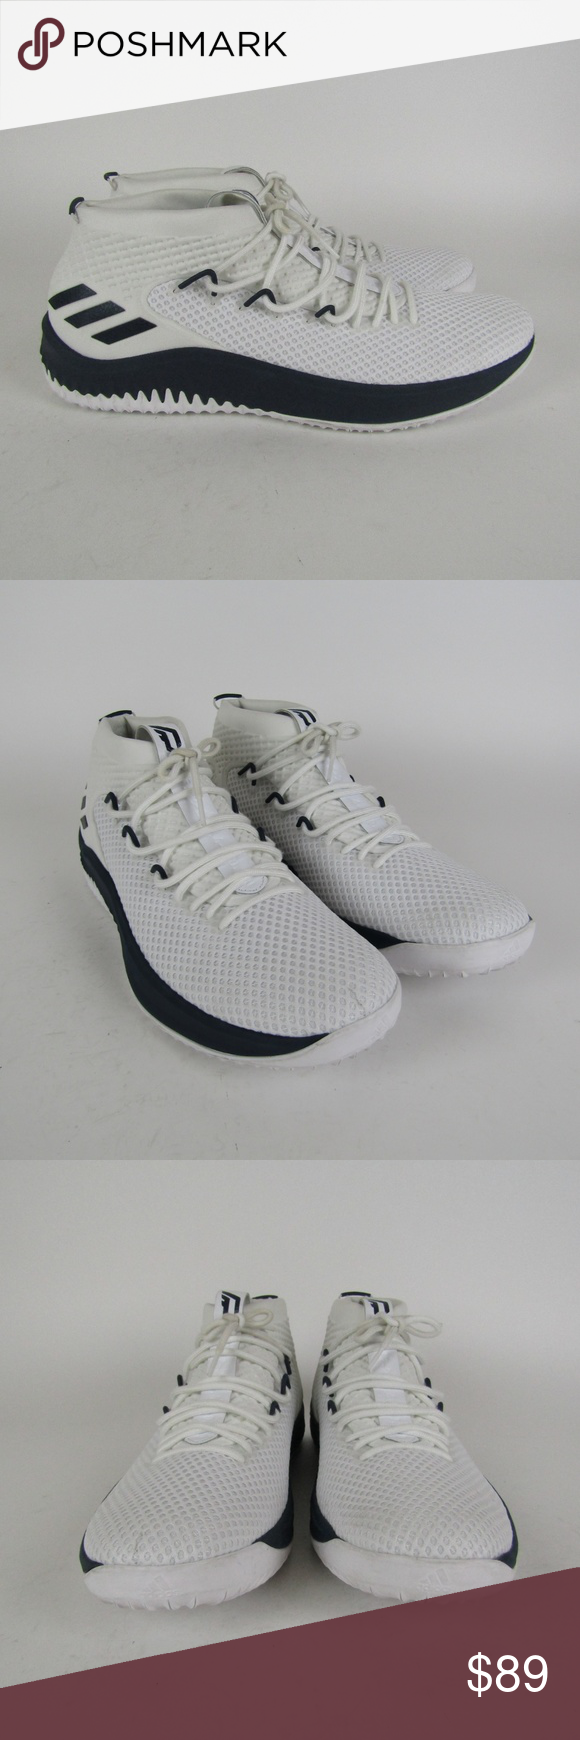 b7cd2cbeb7d157 Adidas Dame 4 Player Exclusive Shoes AC7267 sz 19 Shoes169 Adidas Dame 4  Player Exclusive Men s Basketball Shoes White  Blue AC7267 Size 19 Brand  new ...